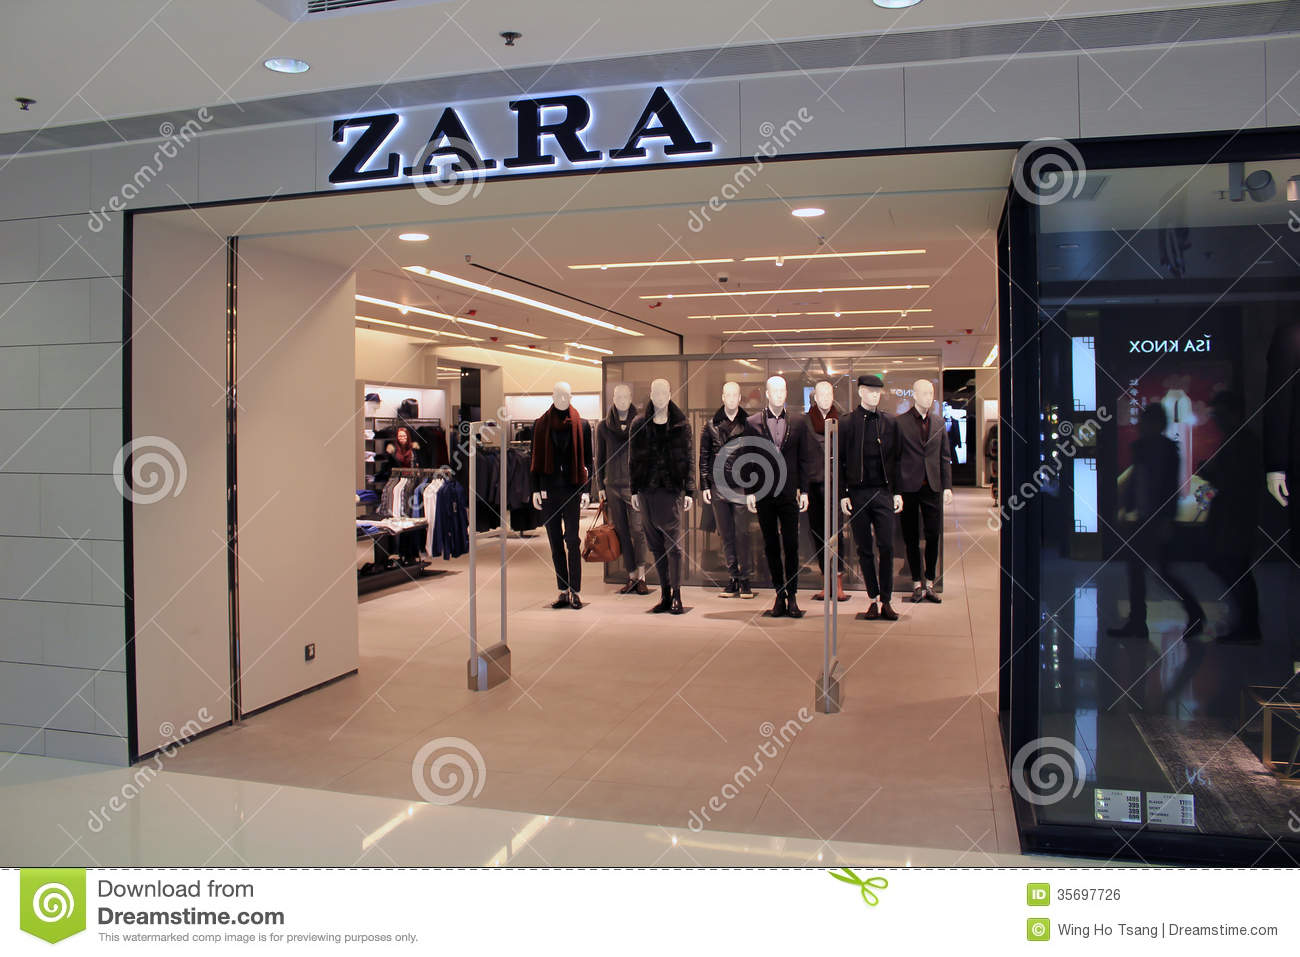 We don't quite understand why people would buy online and pick up at the store but it is an interesting wager Zara is putting on Hong Kongers need for speed and famous impatience. If you spend HK$ or less, delivery will cost HK$40 and takes working days.